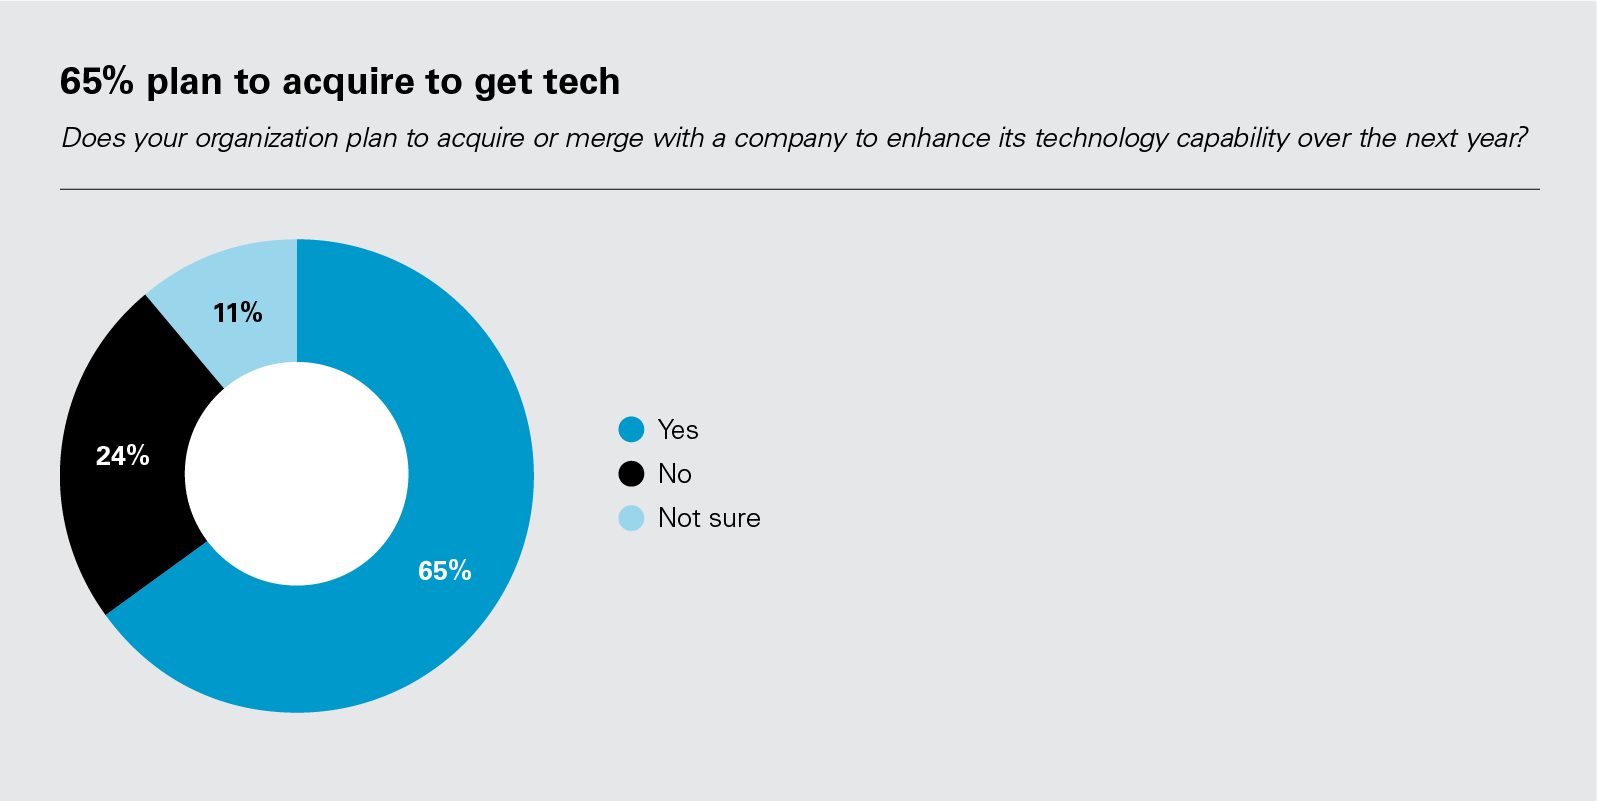 65% plan to acquire to get tech